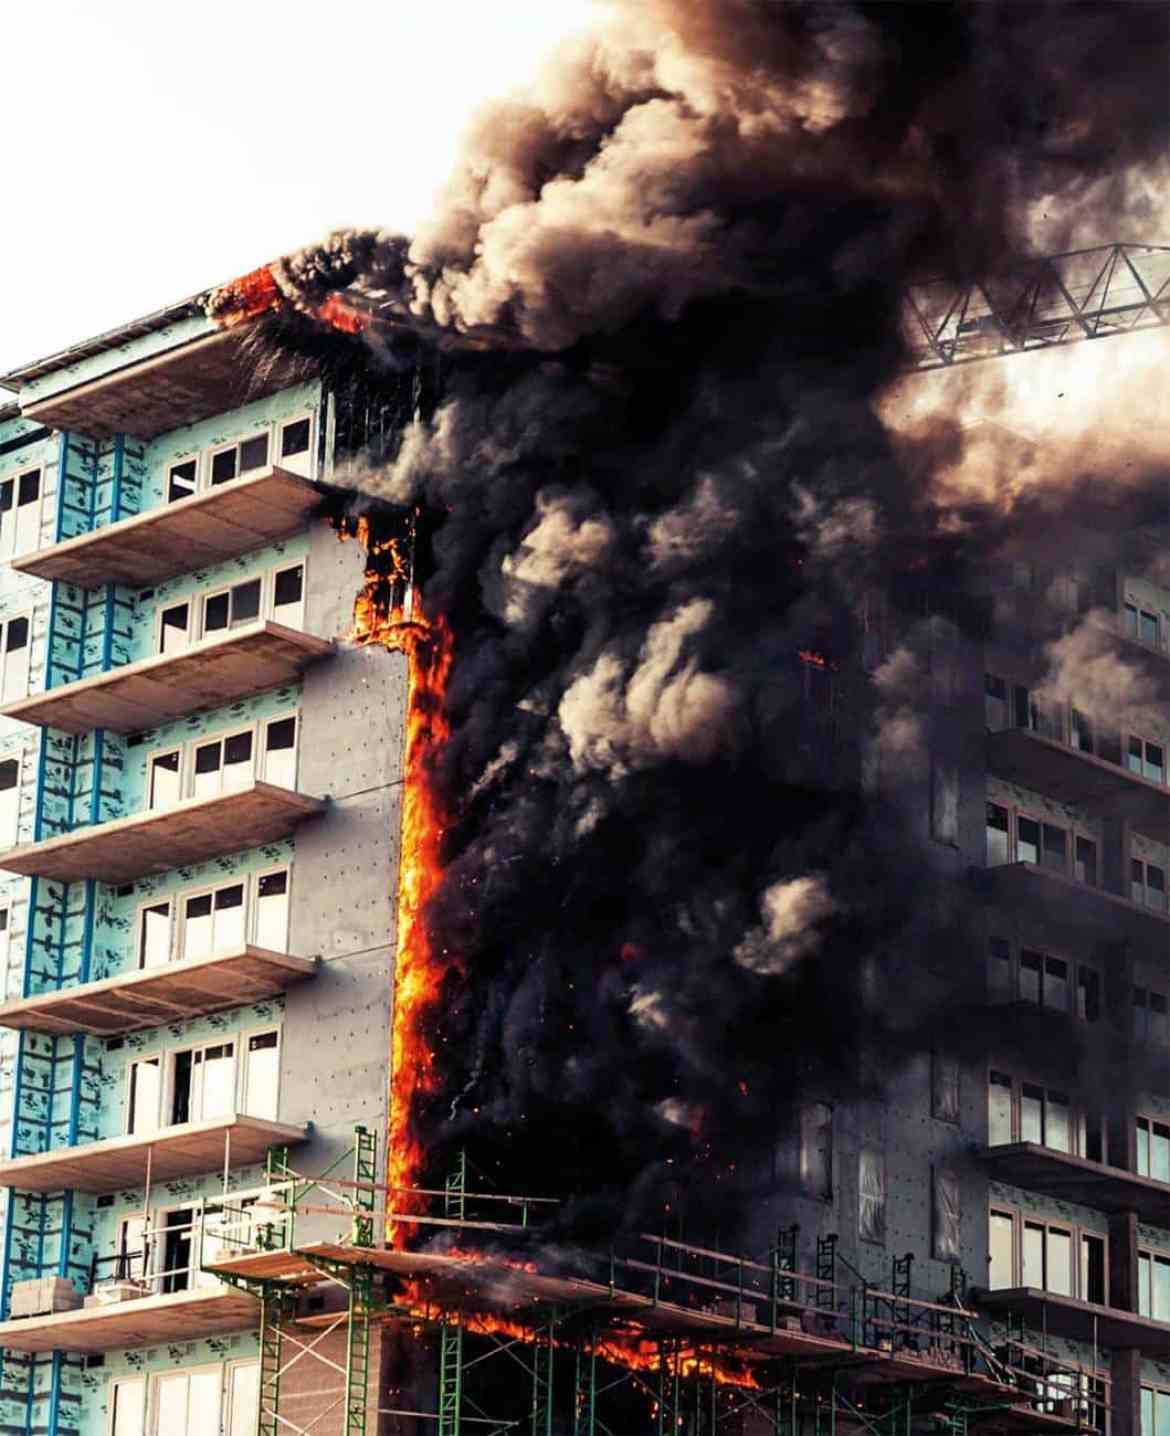 Another instance of a construction site major fire in a tower block.